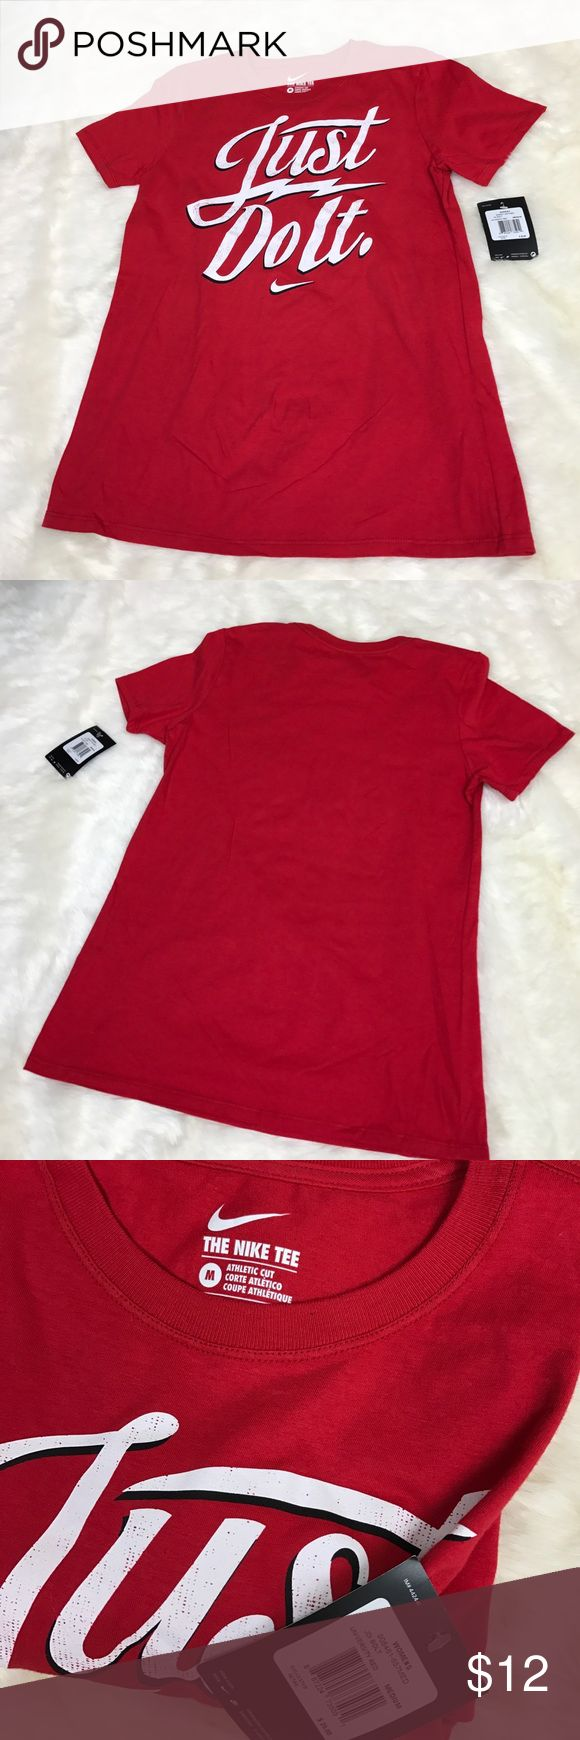 nike athletic cut tee please feel free to ask any questions bundle or make